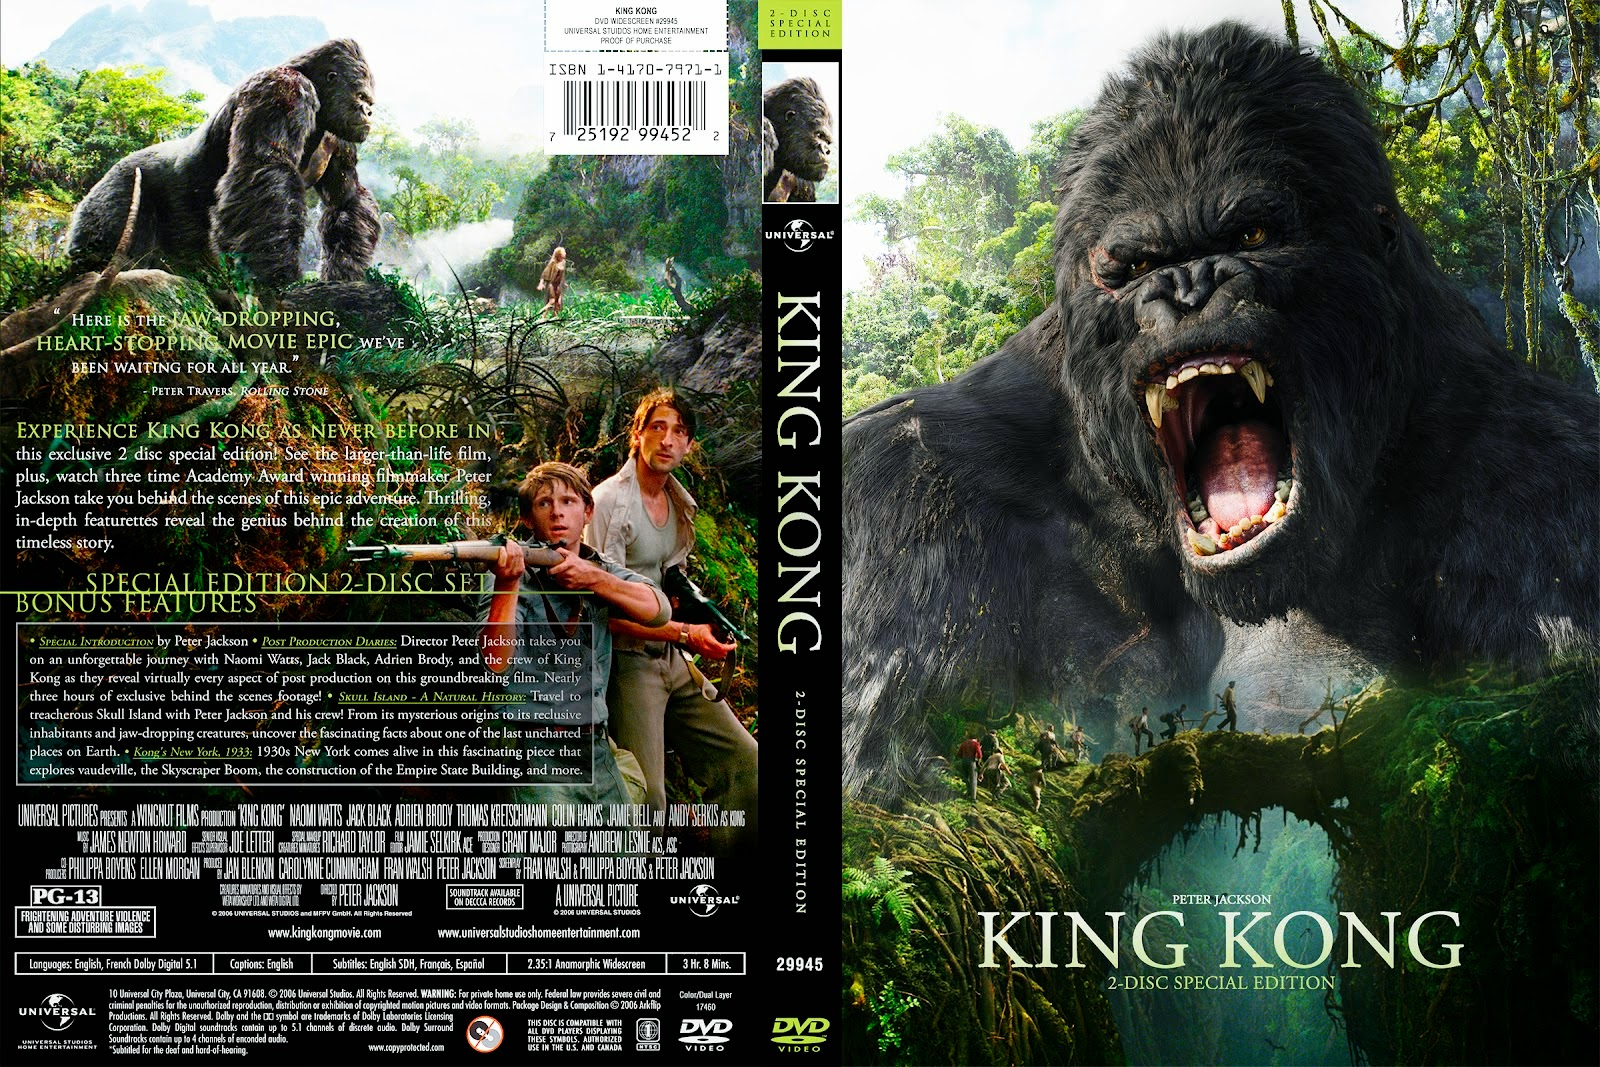 King Kong Dublado Via Torrent | MICHAEL FILMES